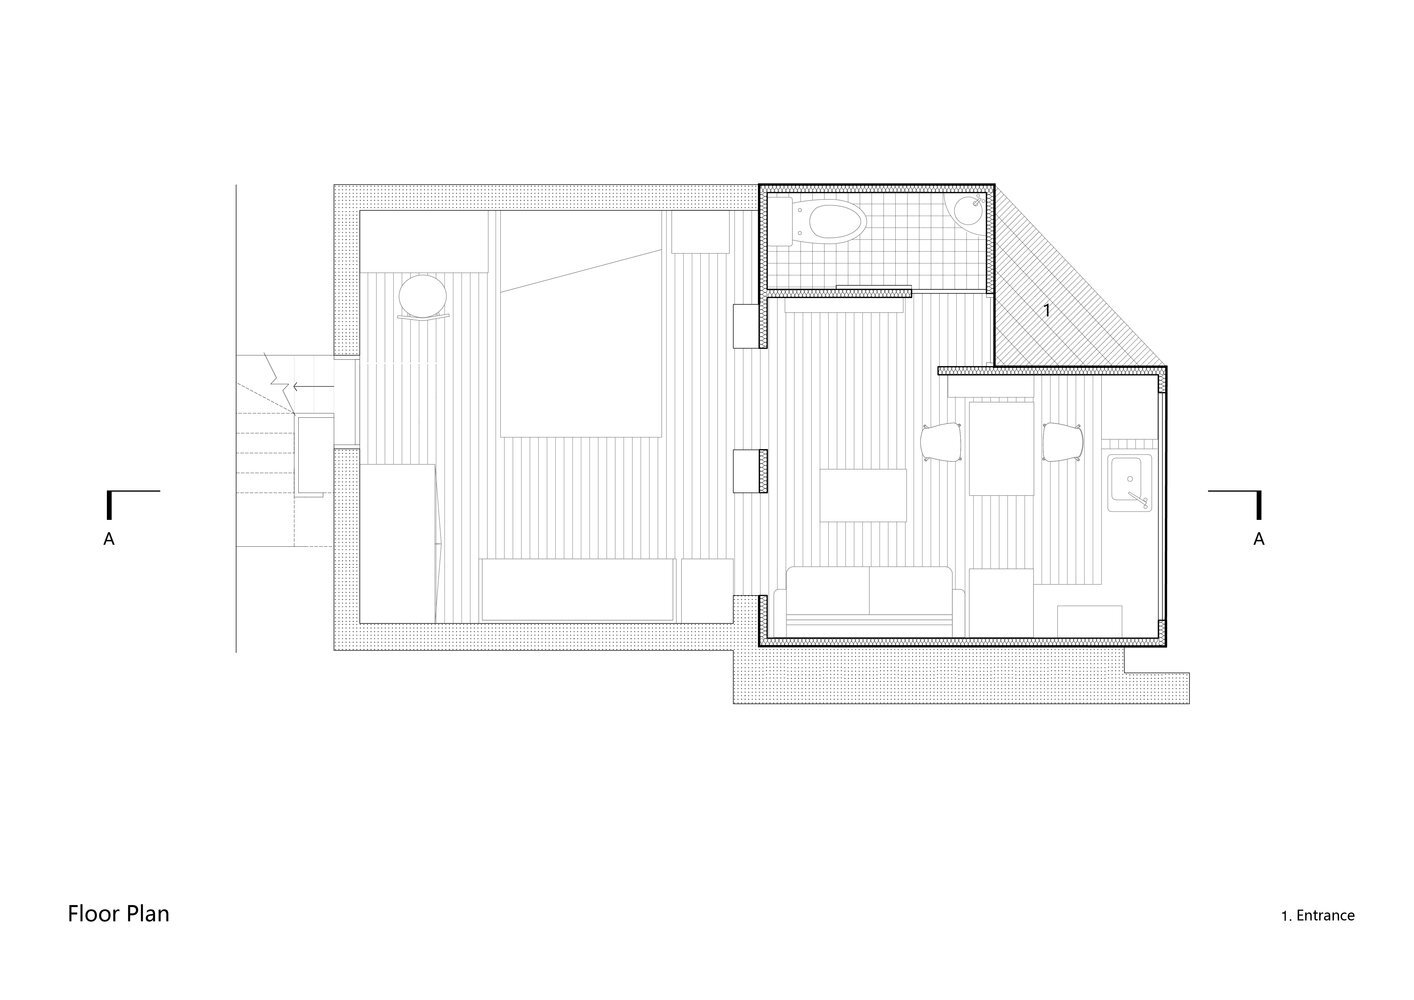 mrs-fans-plugin-house-peoples-architecture-office-beijing-china-floor-plan-humble-homes